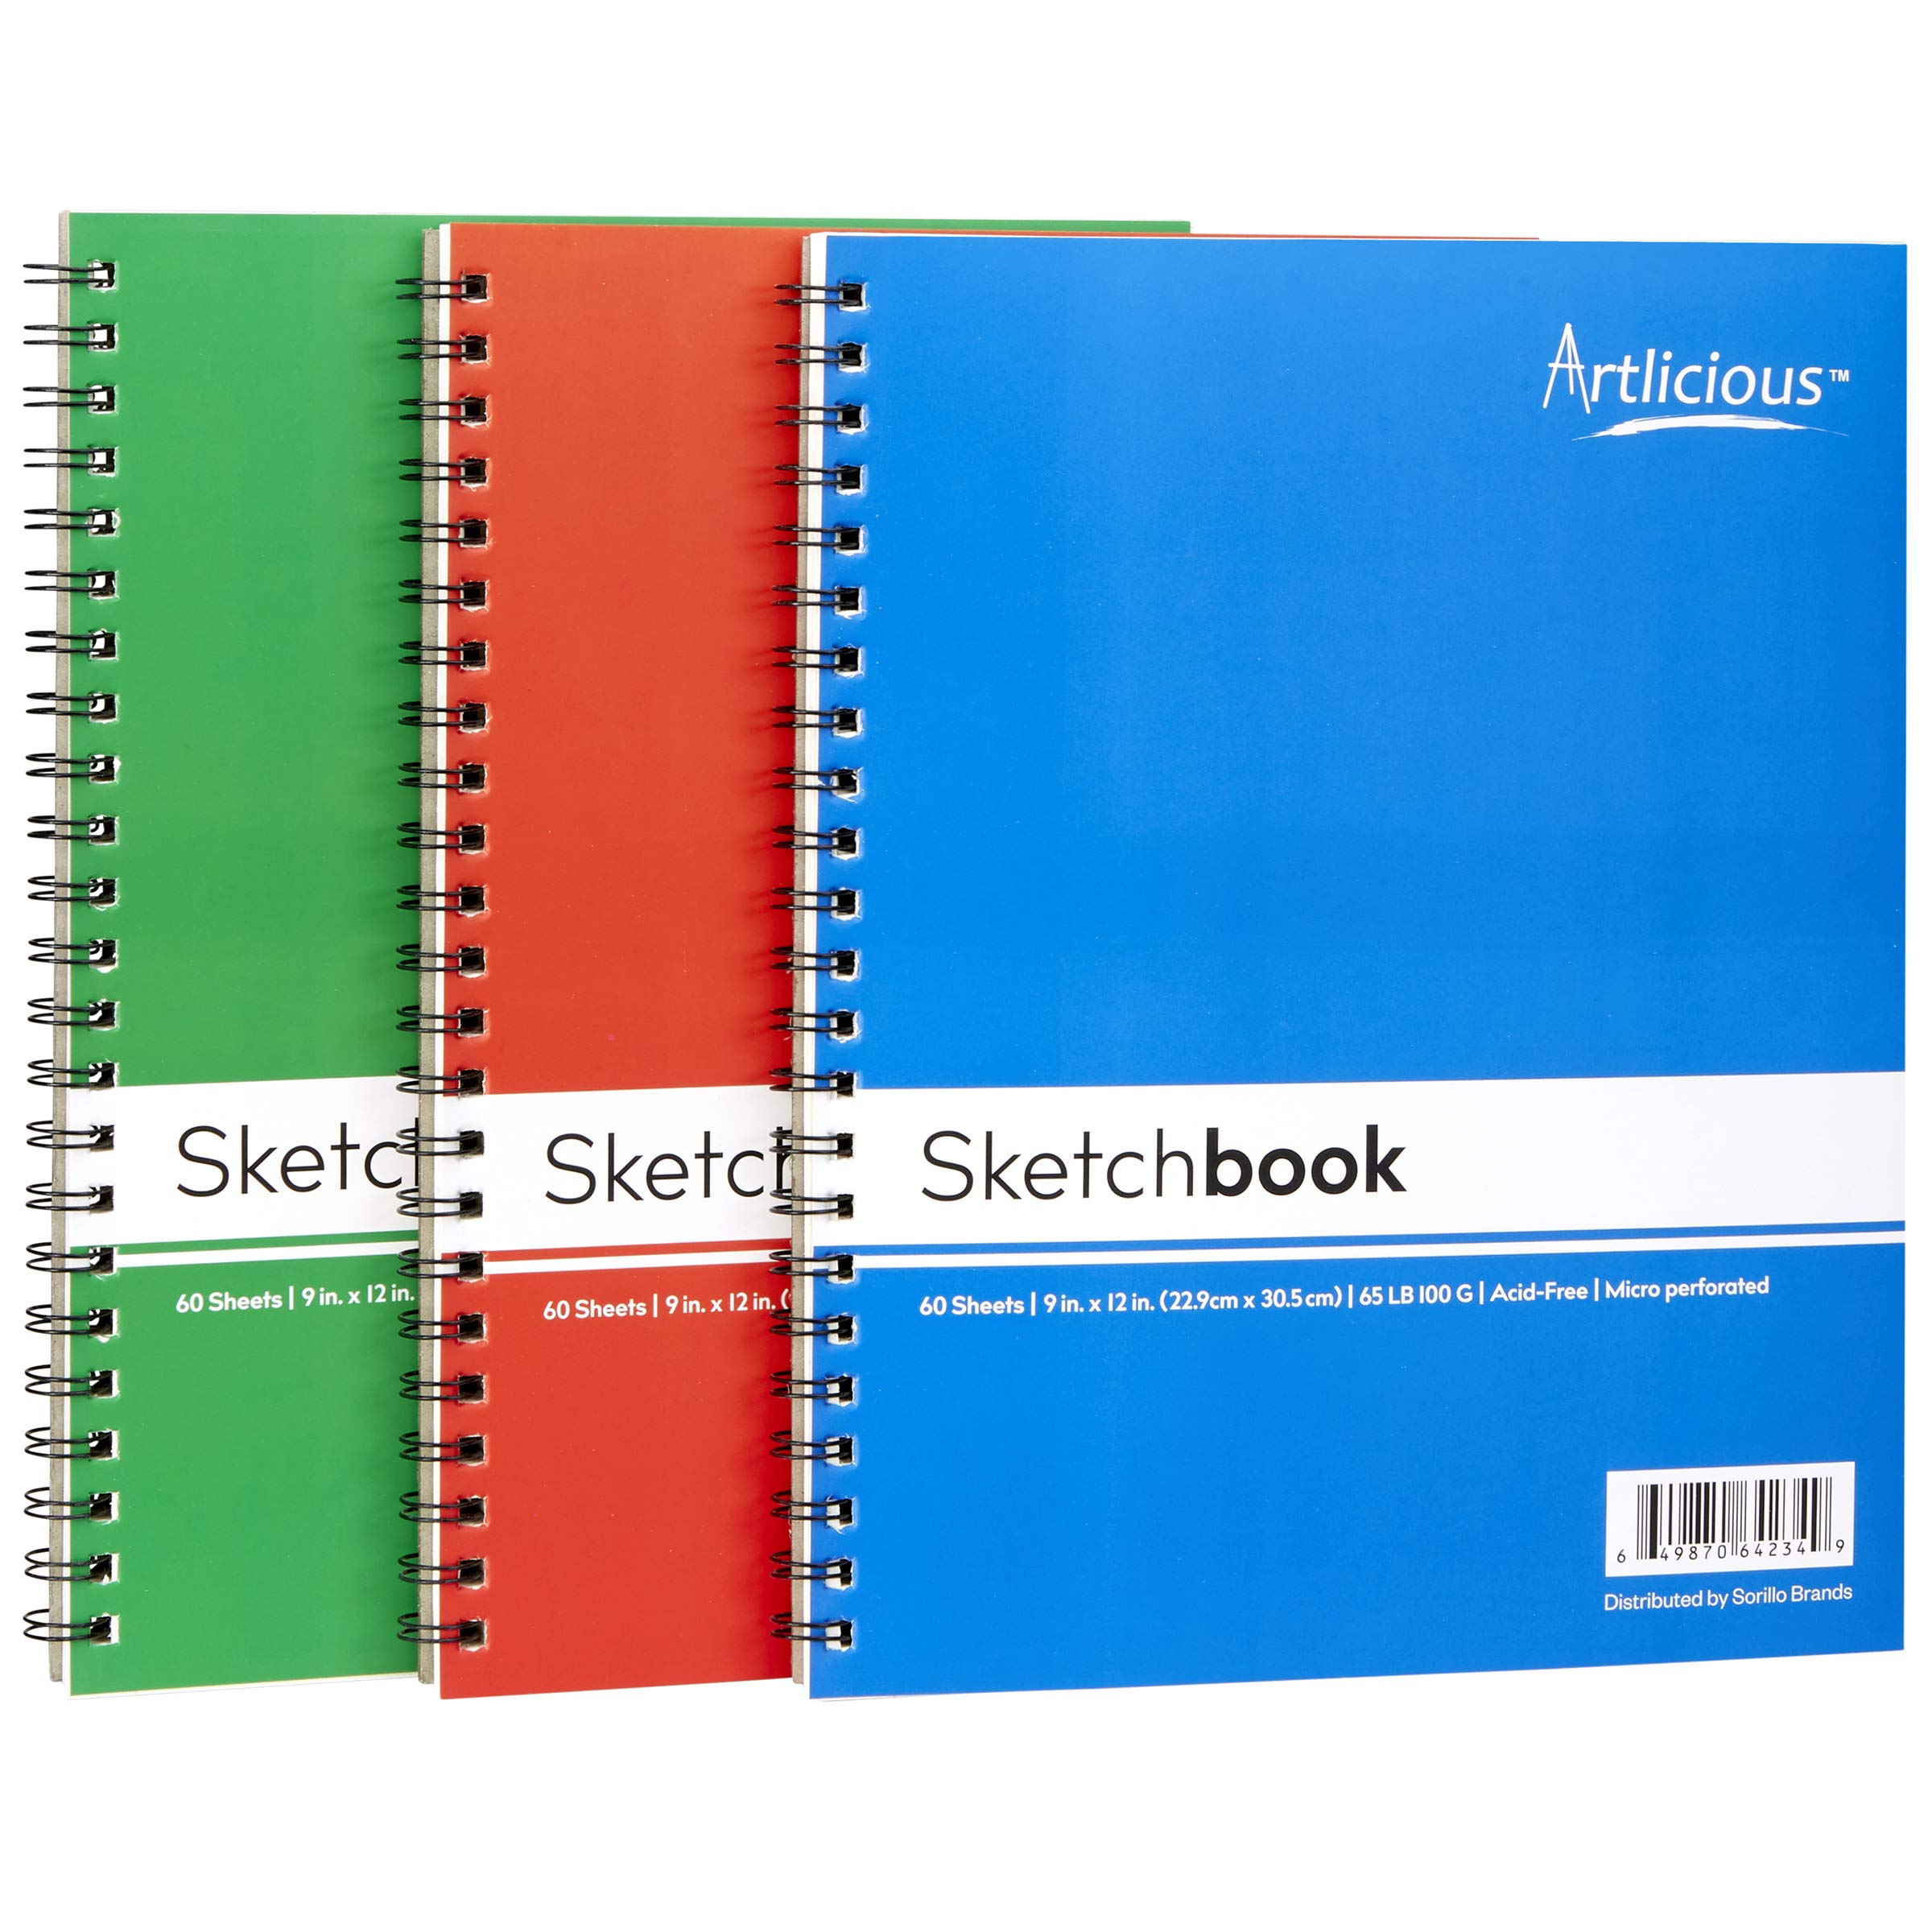 Artlicious - 3 Sketch Pads 9 in. x 12 in for Drawing, Coloring & Doodling (3 Sketch Books) by Artlicious